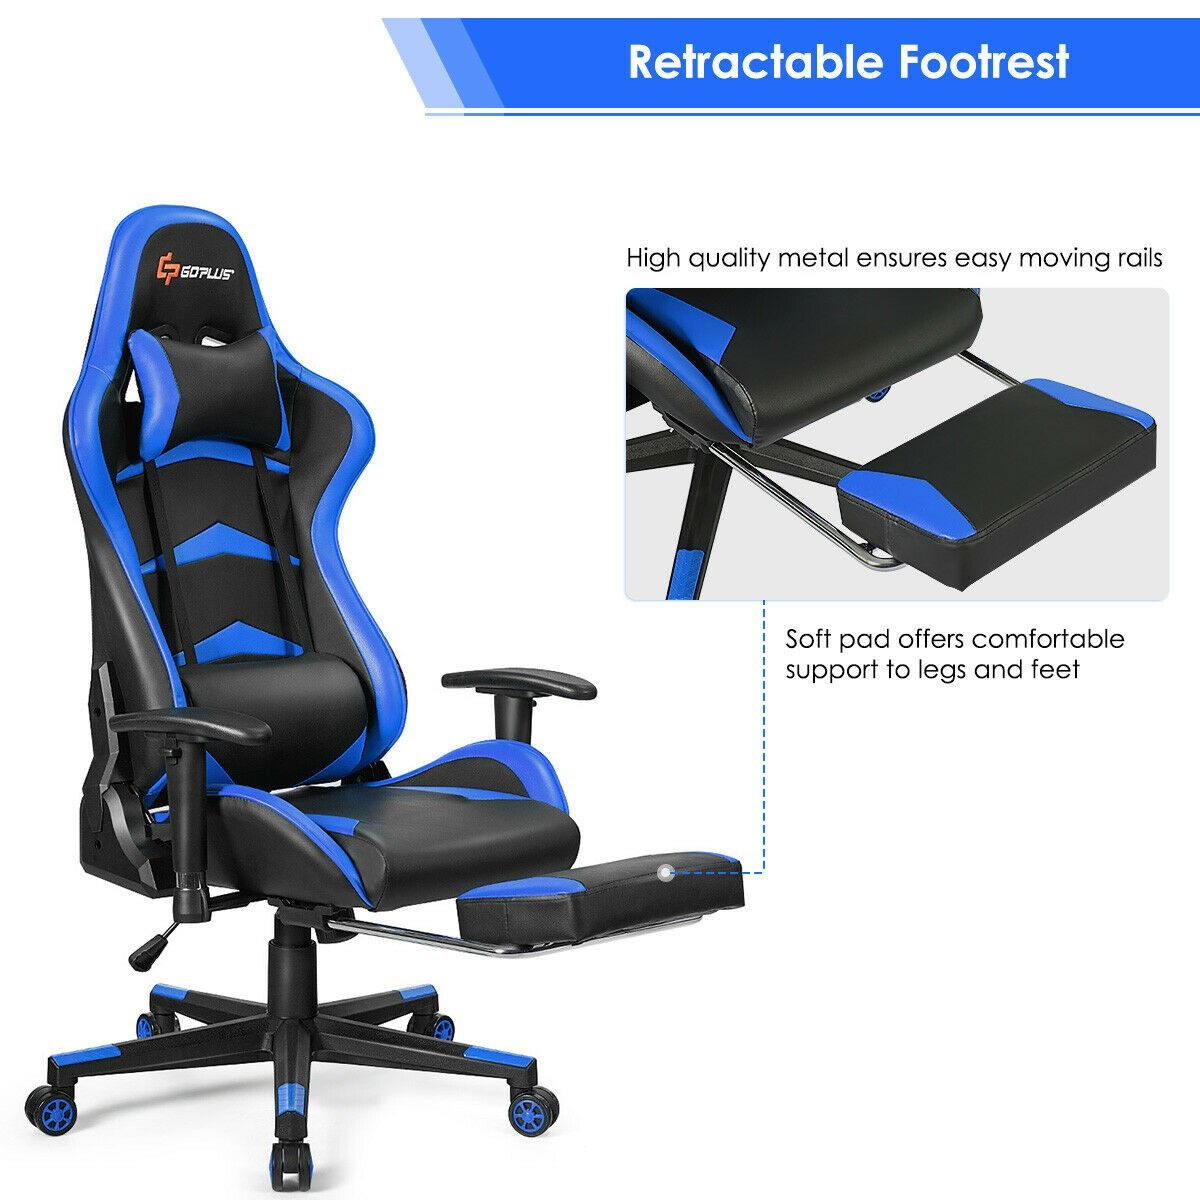 Massage Gaming Chair With Lumbar Support Footrest Gaming Chair Lumbar Support Game Room Kids